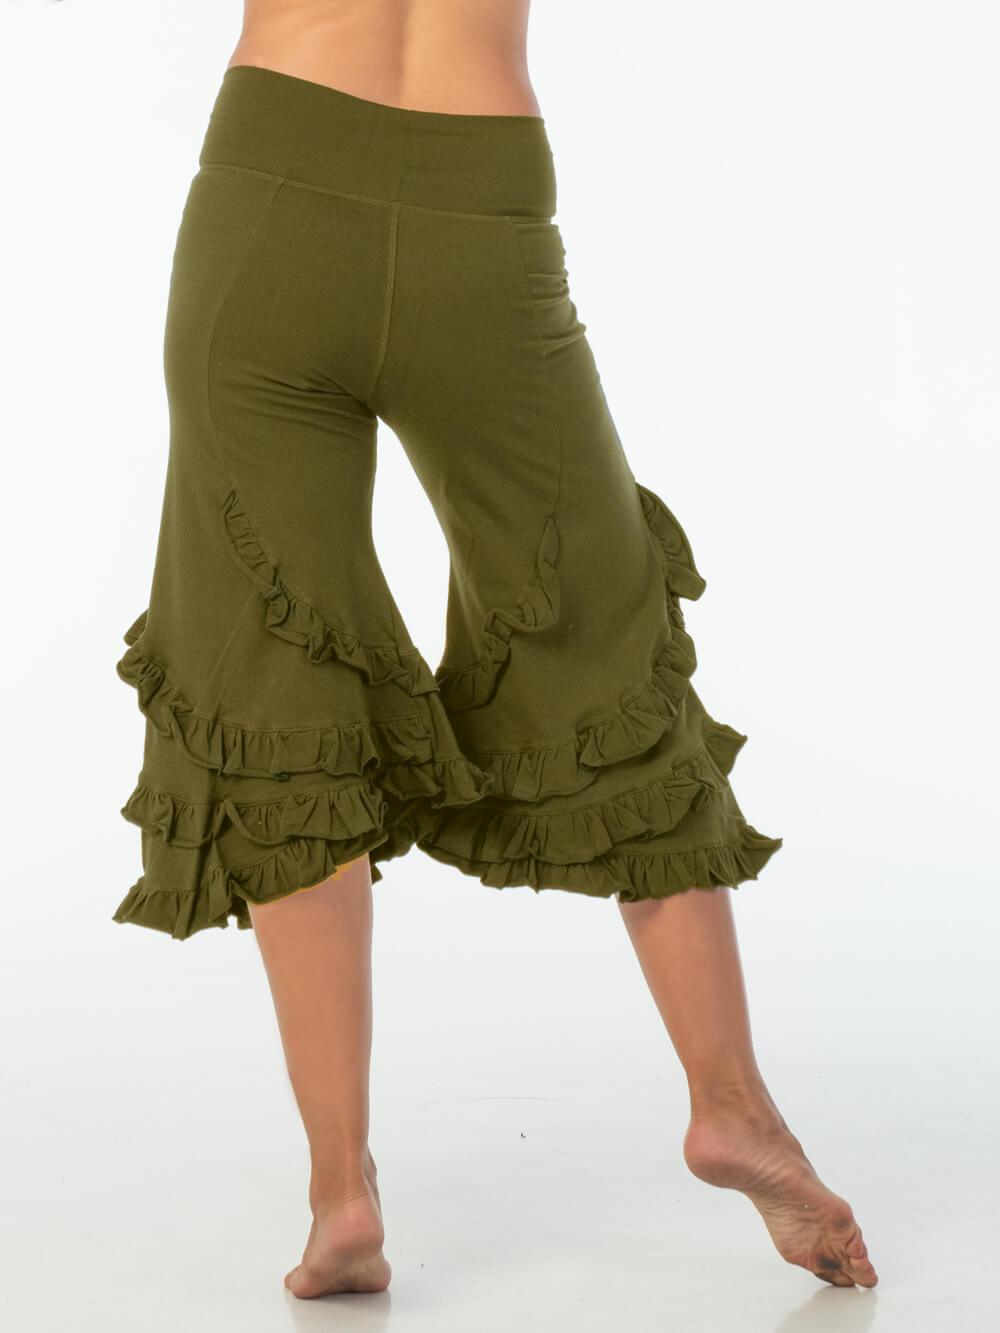 CARAUCCI women's ruffle bloomer pants are shown in olive are made from cotton lycra jersey and have a loose fit silhouette.